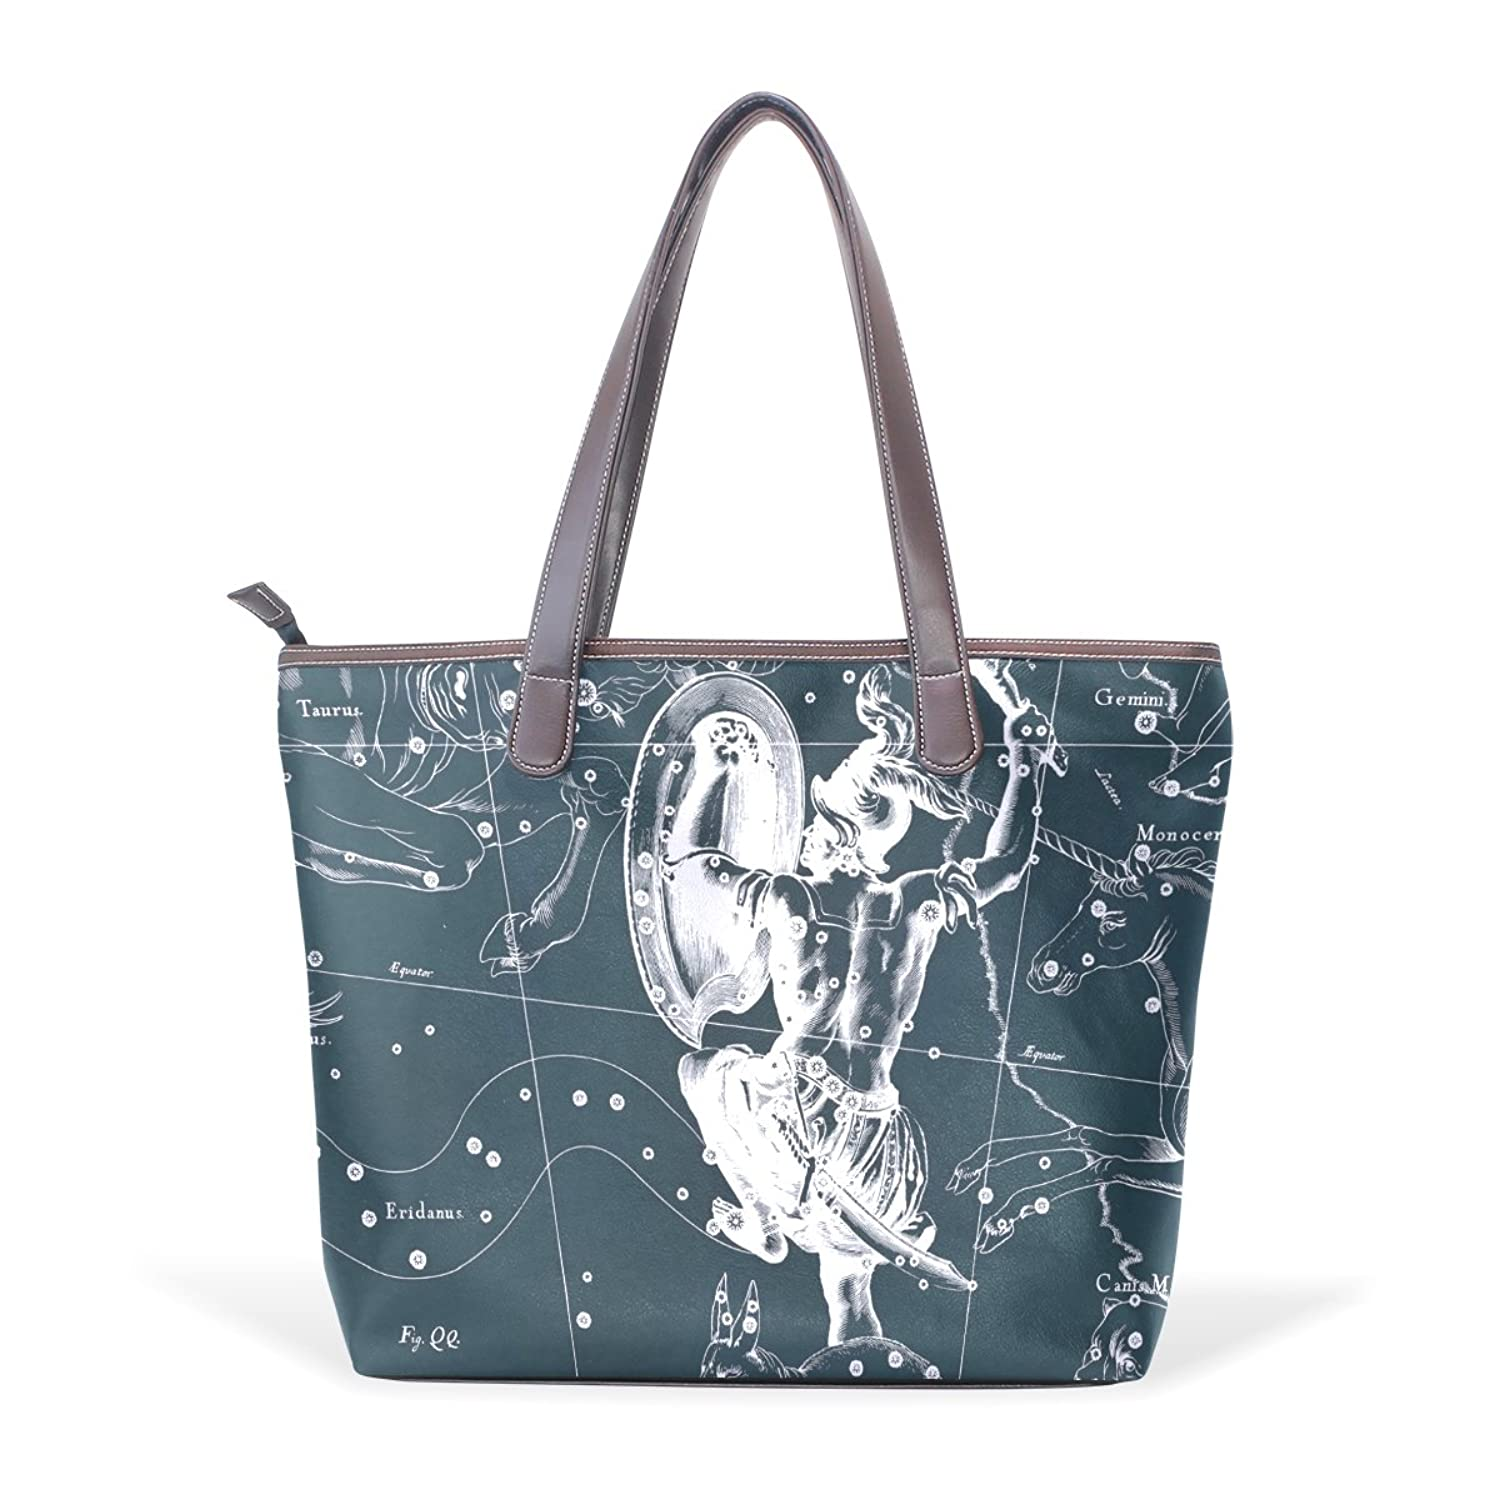 Womens Leather Tote Bag,Fantasy Constellation Graph Orion,Large Handbag